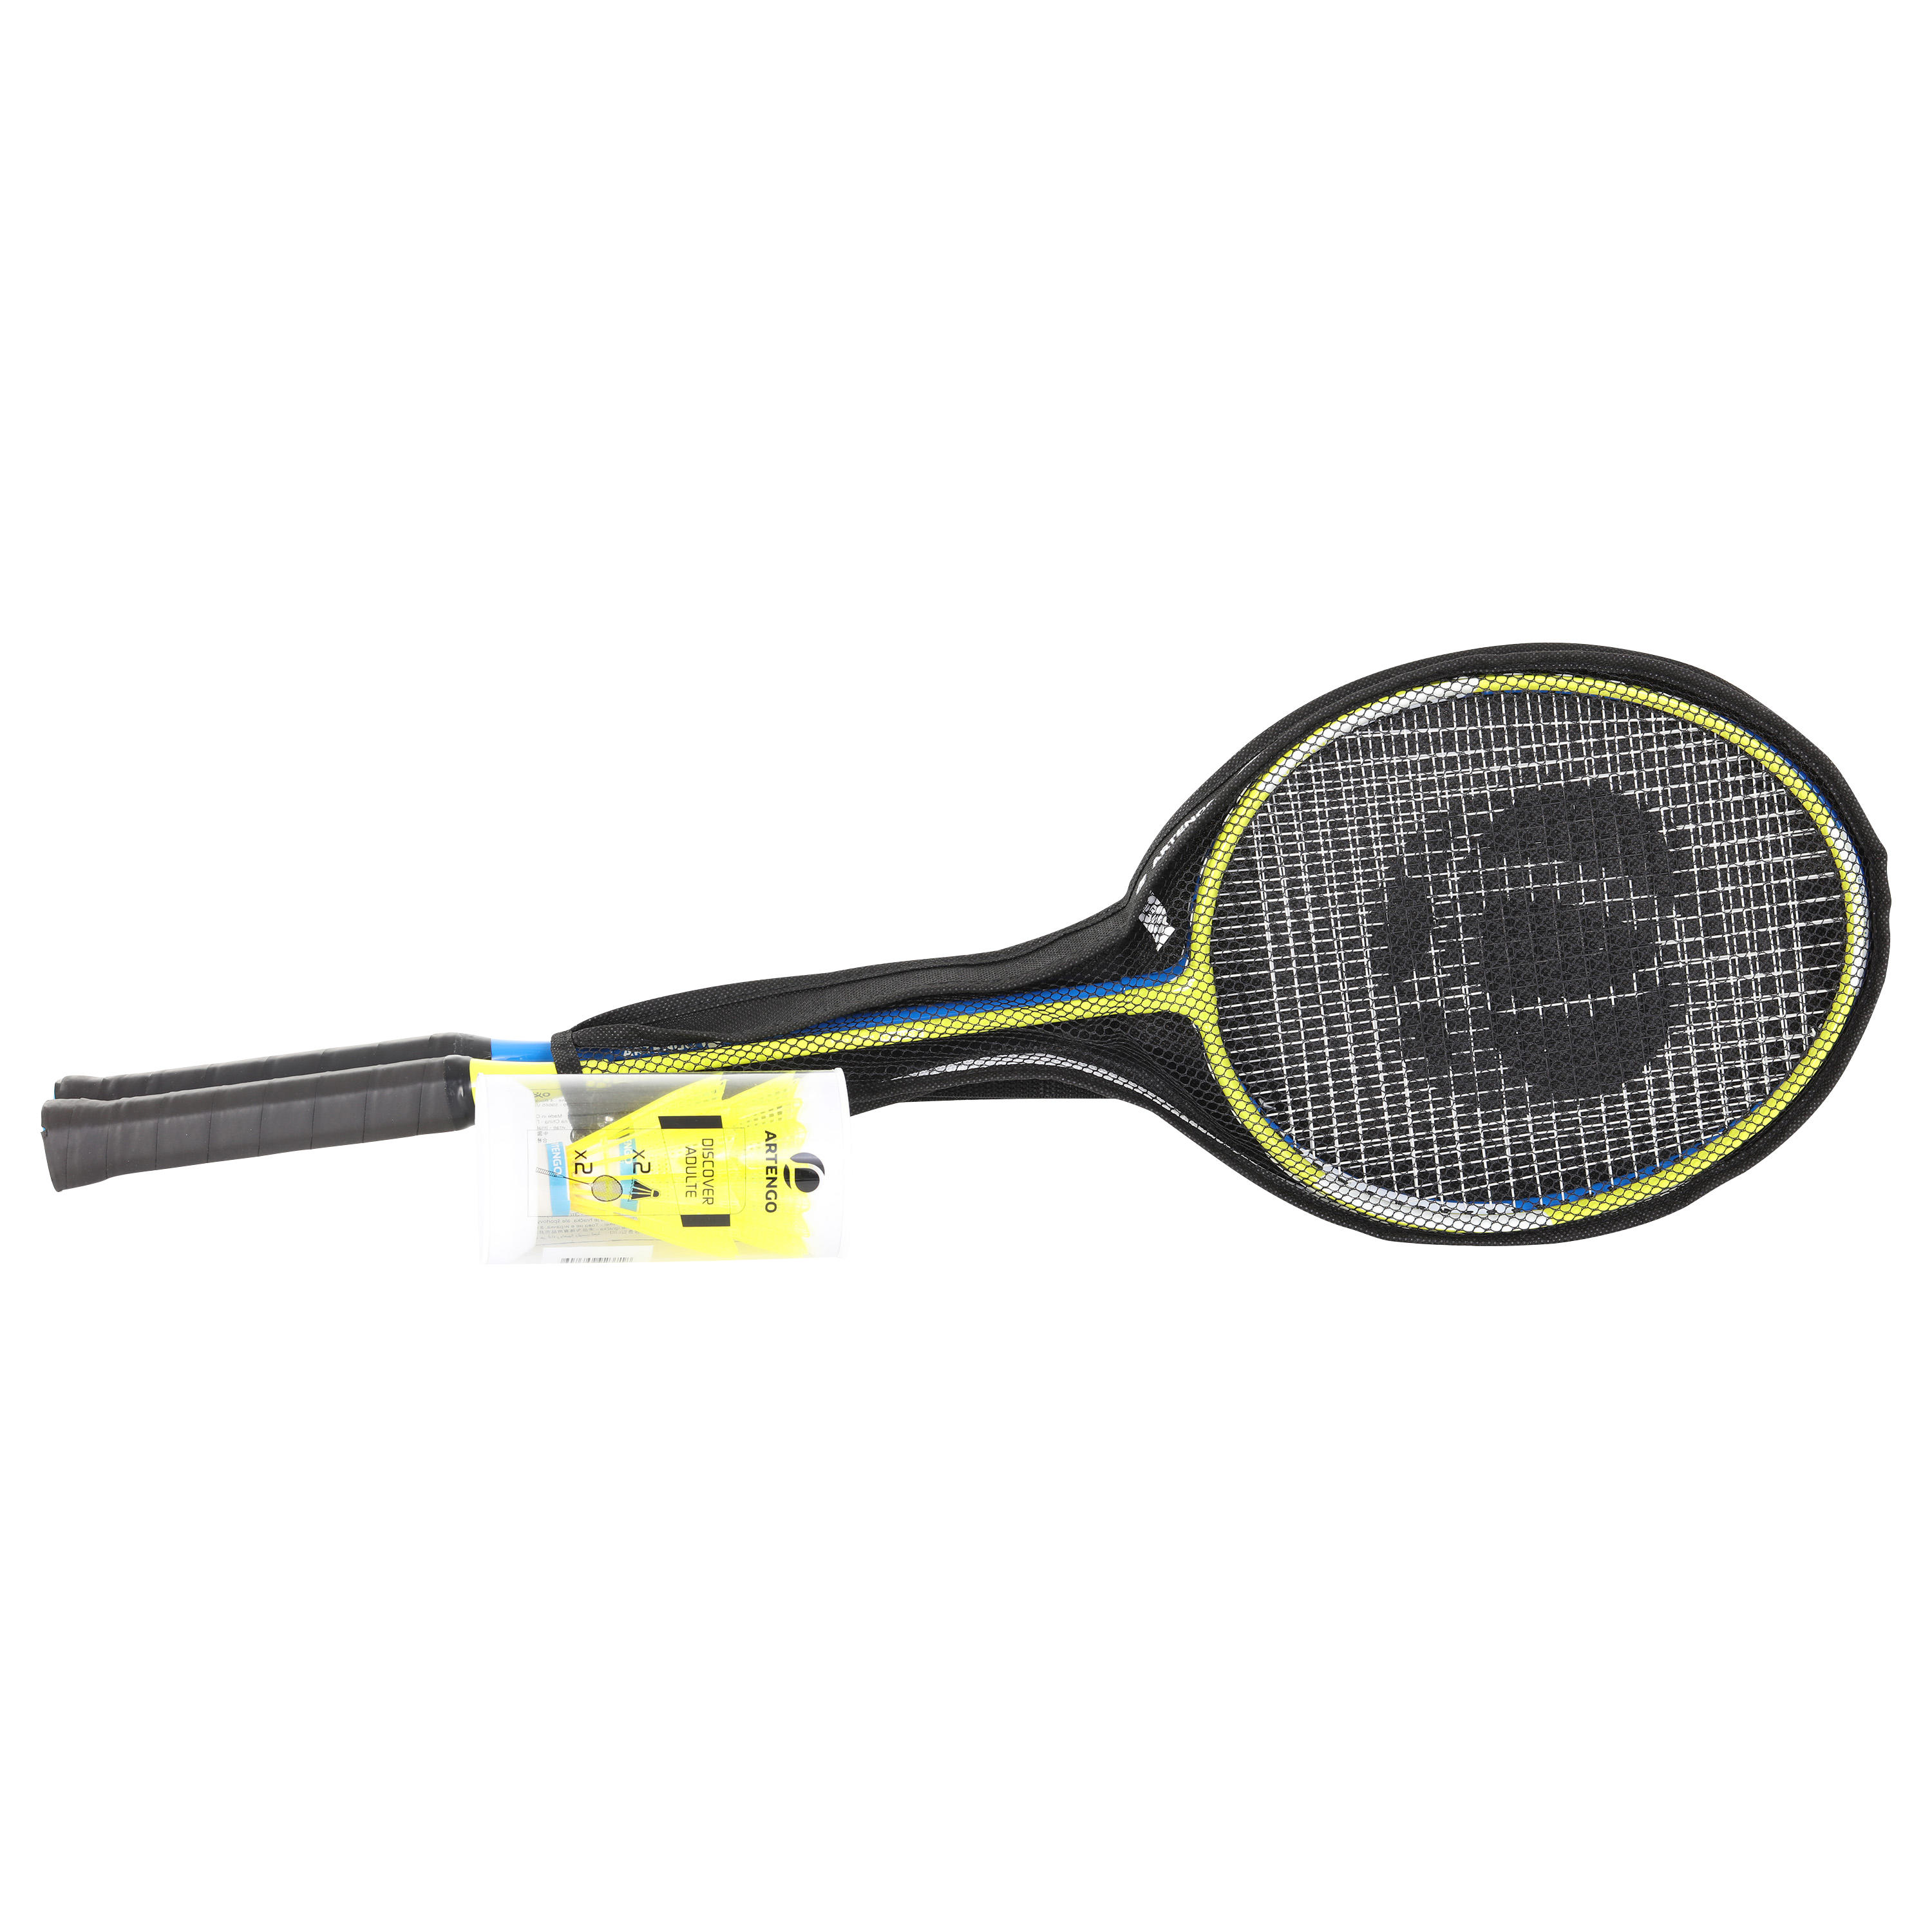 Adult Badminton Racquets Starter Set - Yellow/Blue